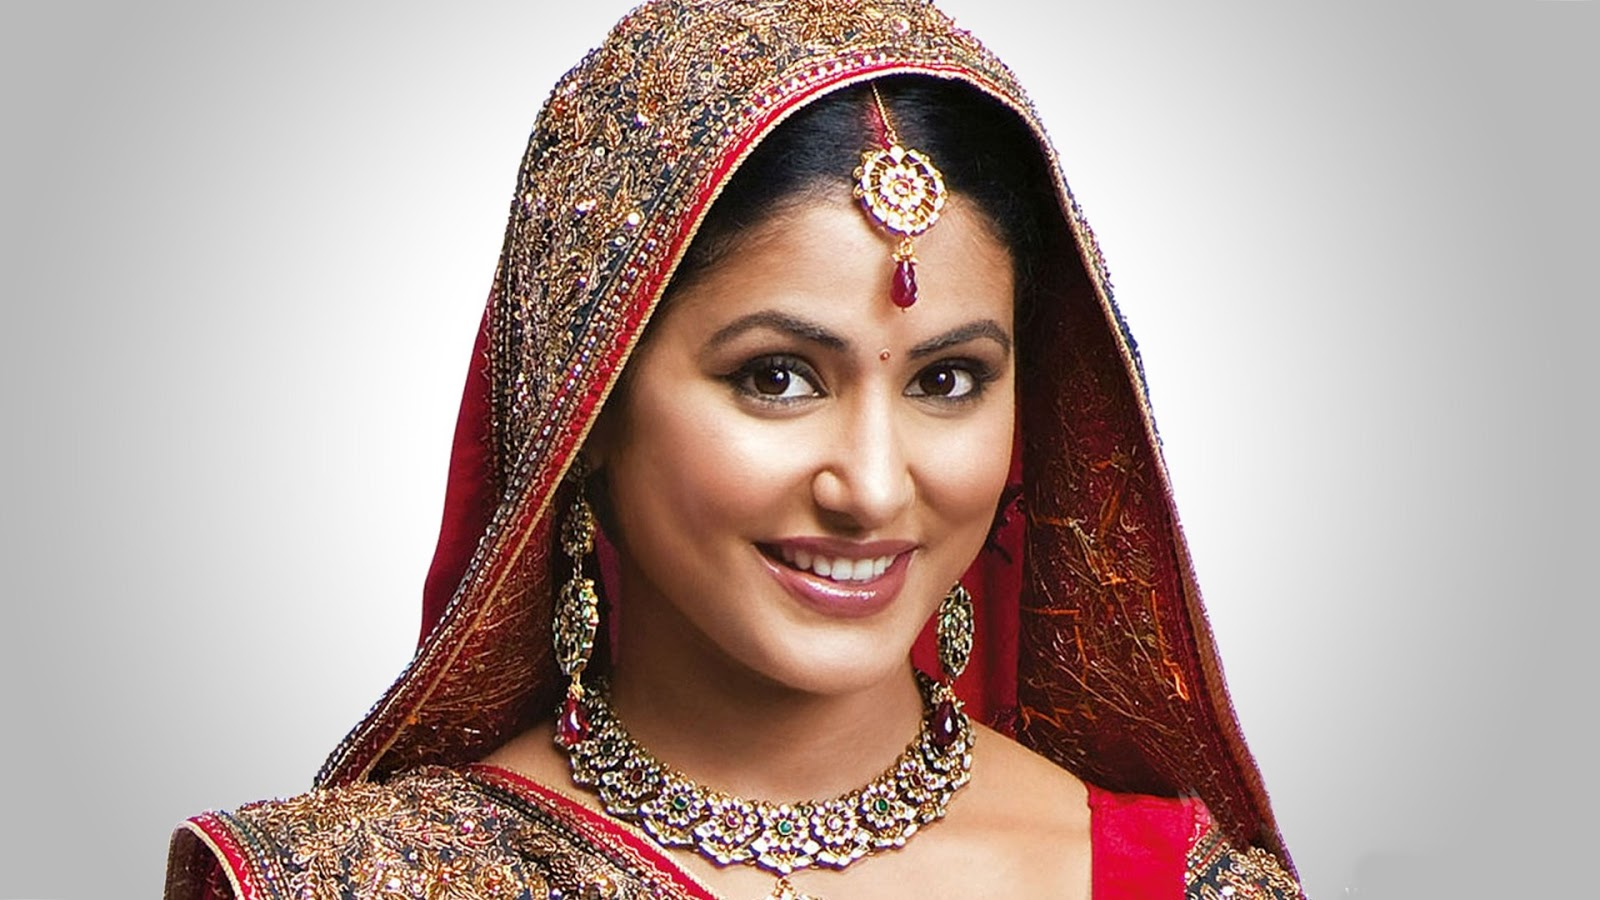 Download All New Collection Of Hina Khan Photos In Hd Quality Best